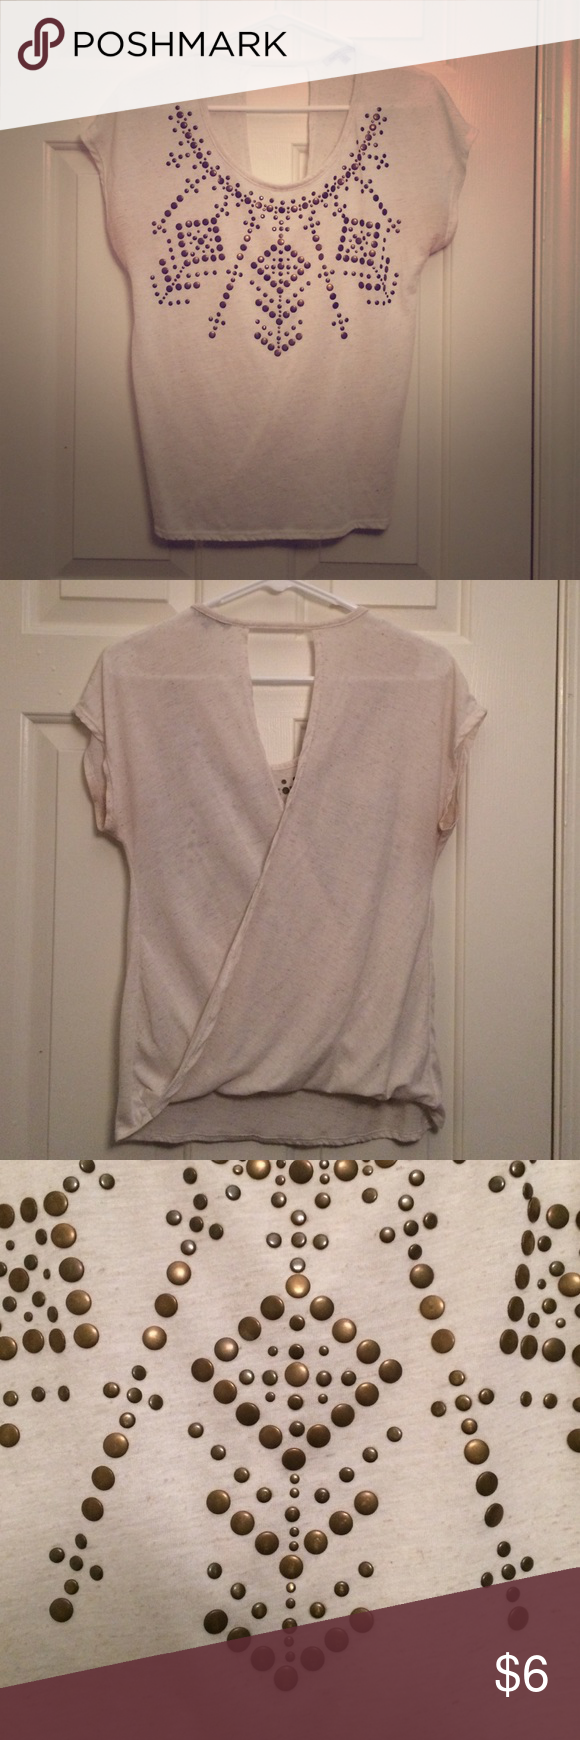 Charlotte Russe top Adorable opened back top with grey and gold details on front. Charlotte Russe Tops Tees - Short Sleeve